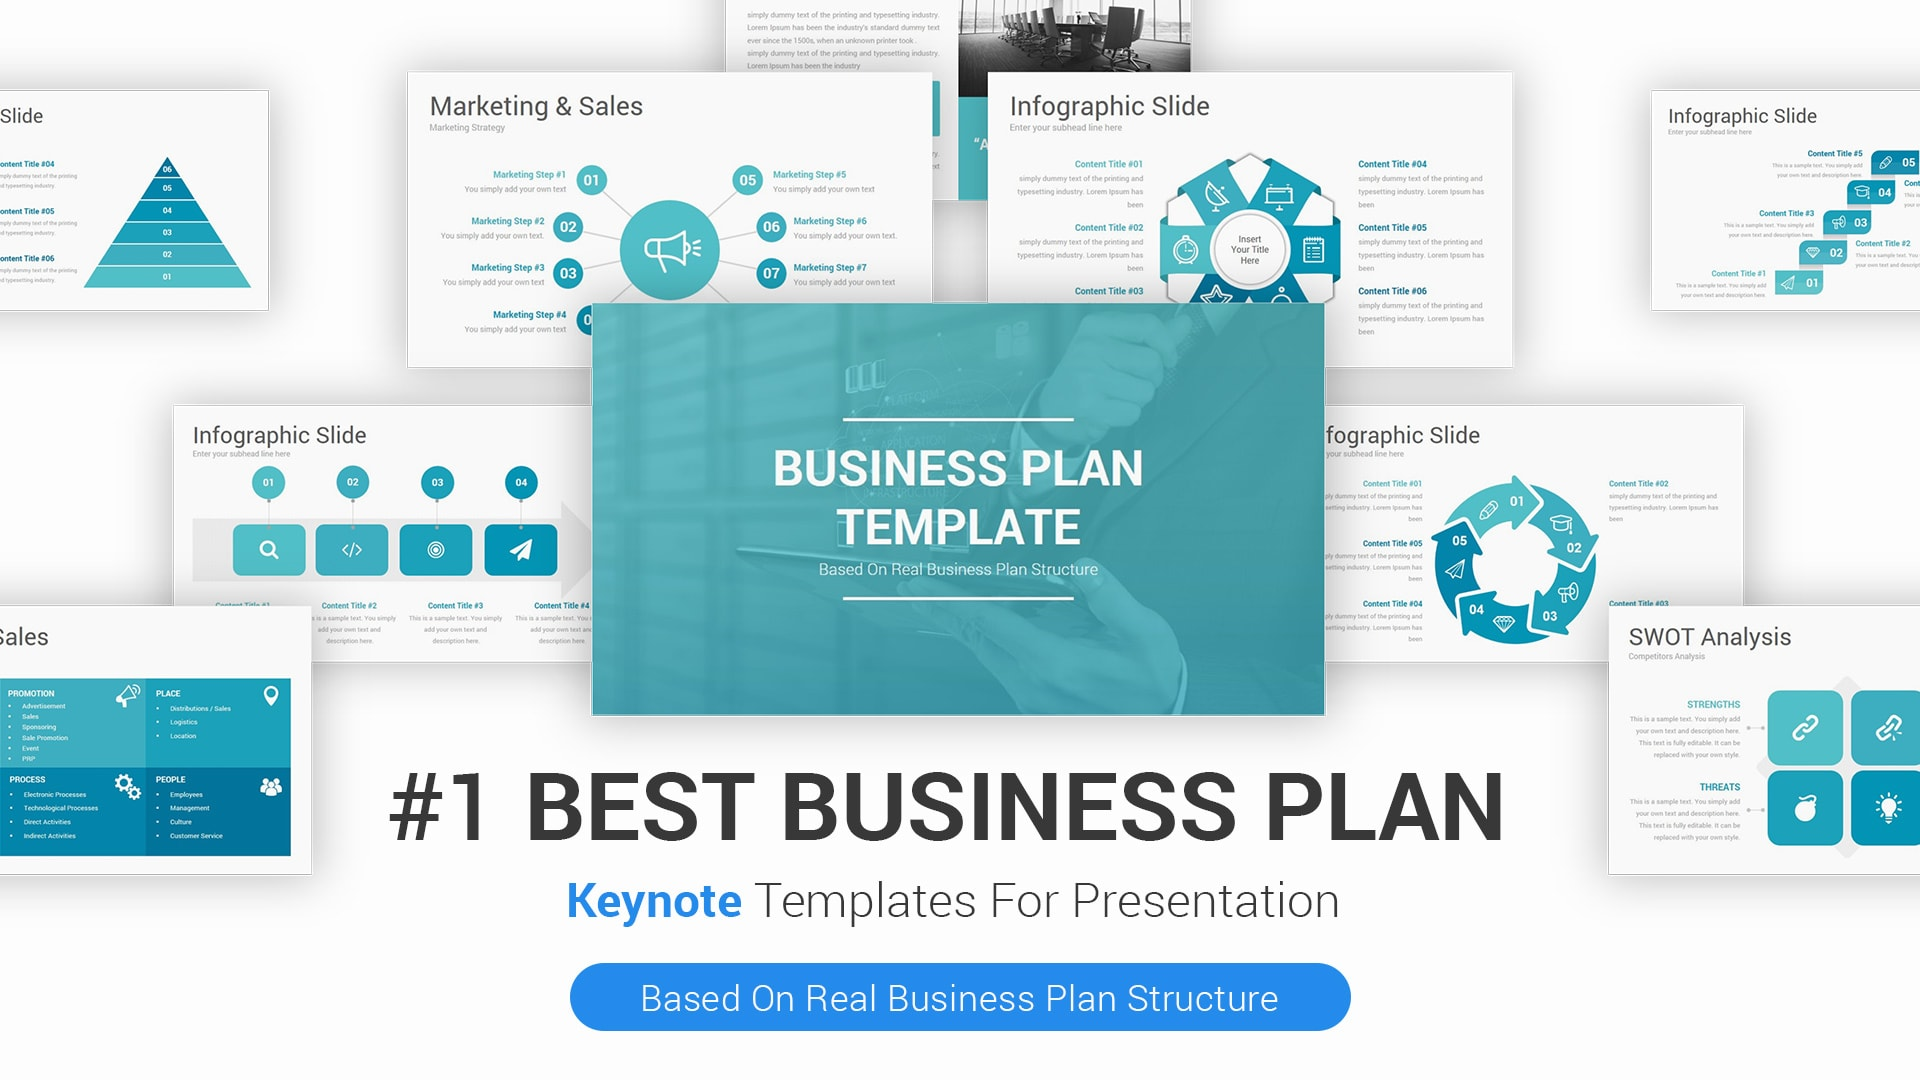 Best Business Plan Keynote Template for Presentations – Simple Mac Keynote Presentation Template